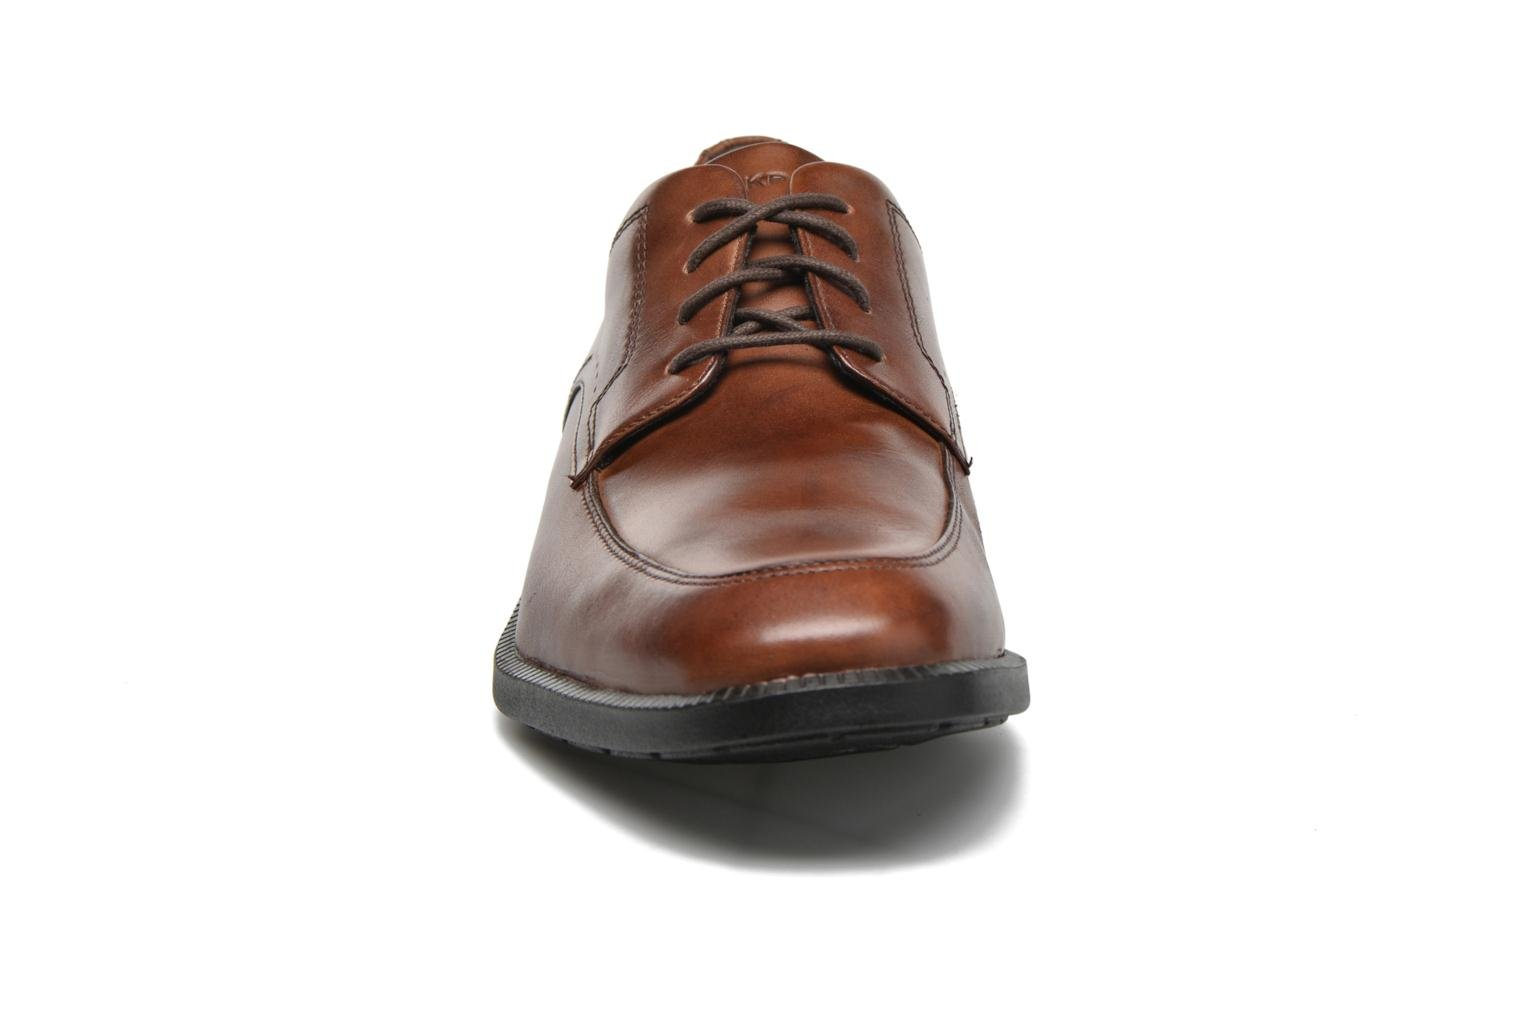 DP Modern Apron Toe New Brown